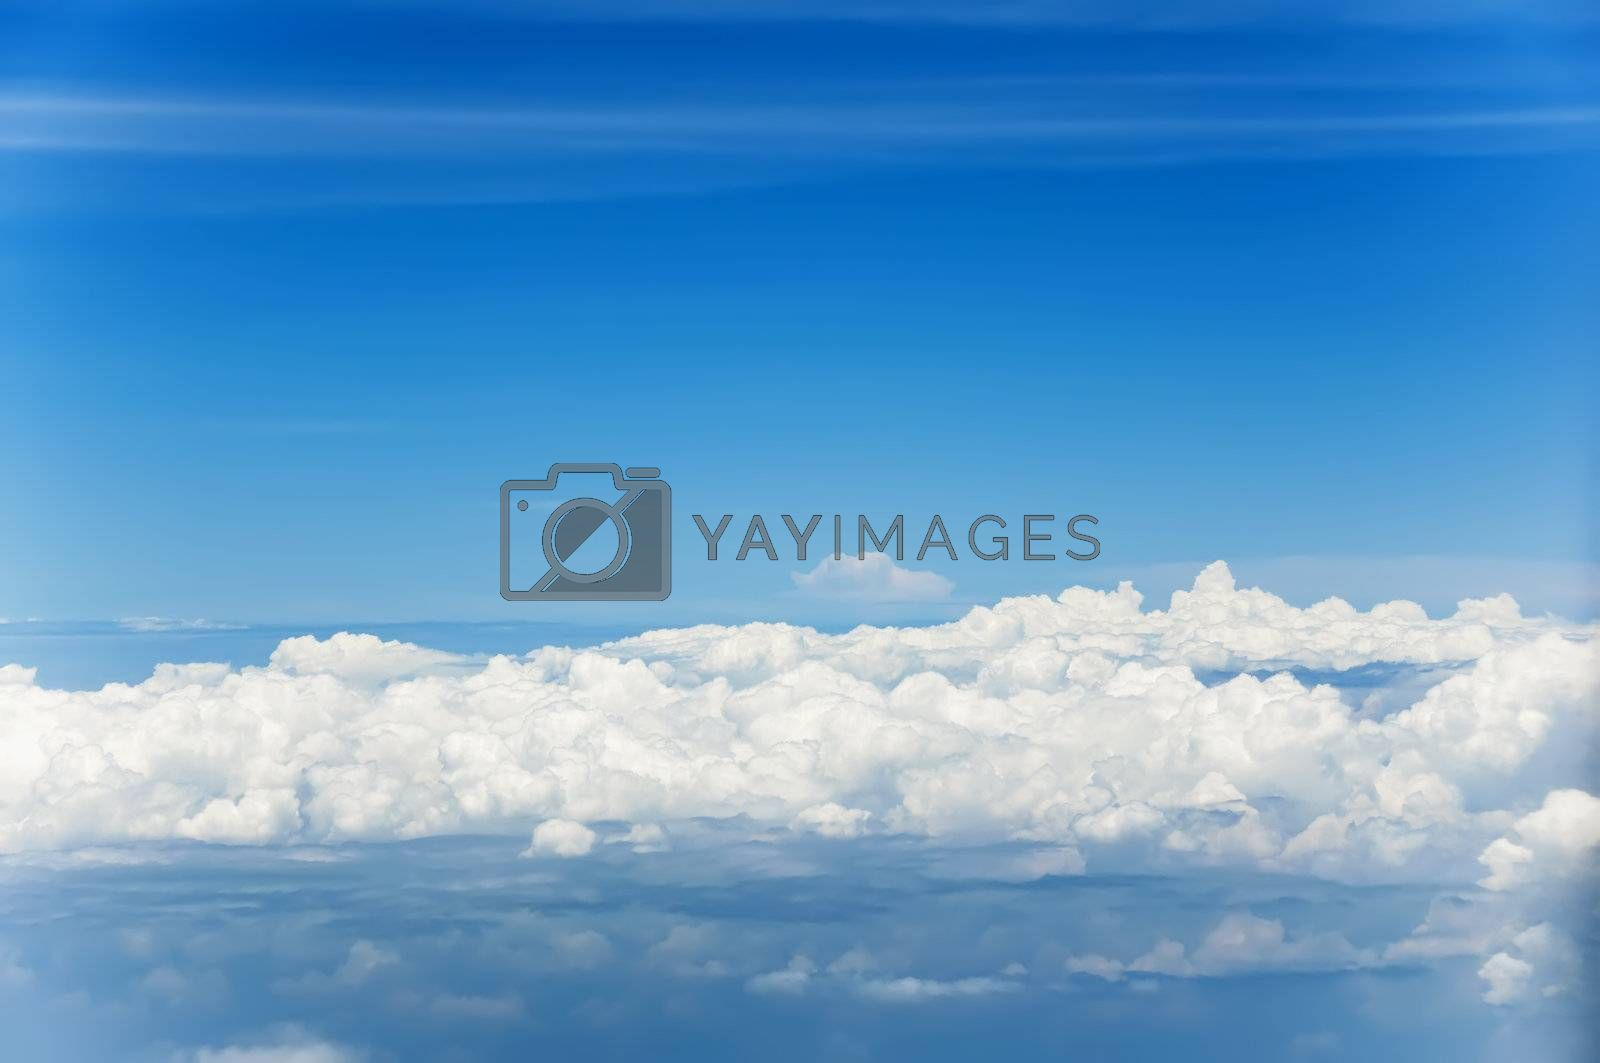 Royalty free image of Clouds by tonyoquias